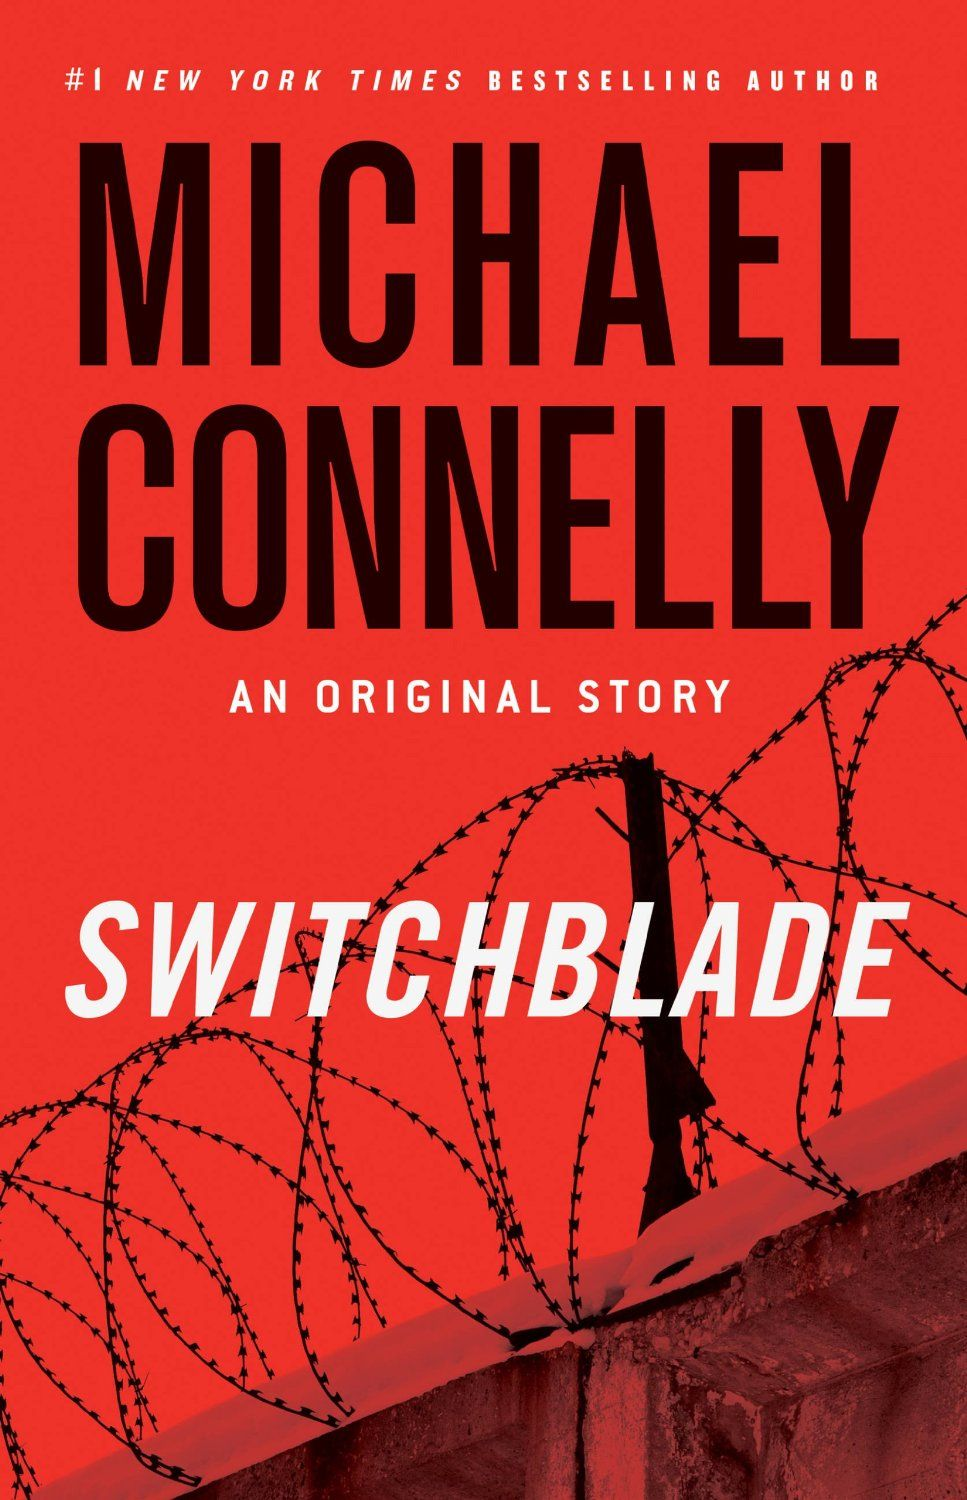 d28975970d28 Amazon.com: Switchblade: An Original Story eBook: Michael Connelly ...